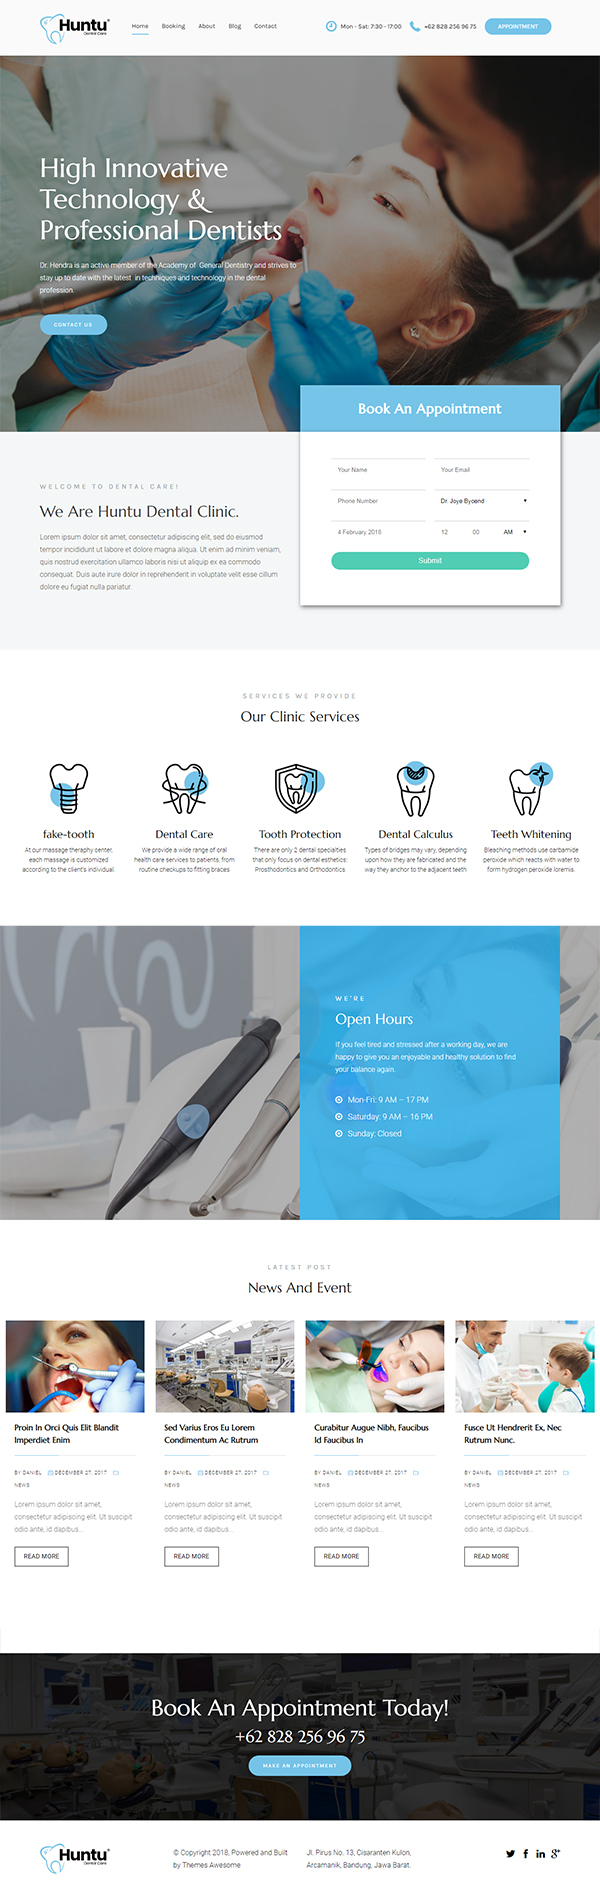 Huntu - Dental Clinic Theme